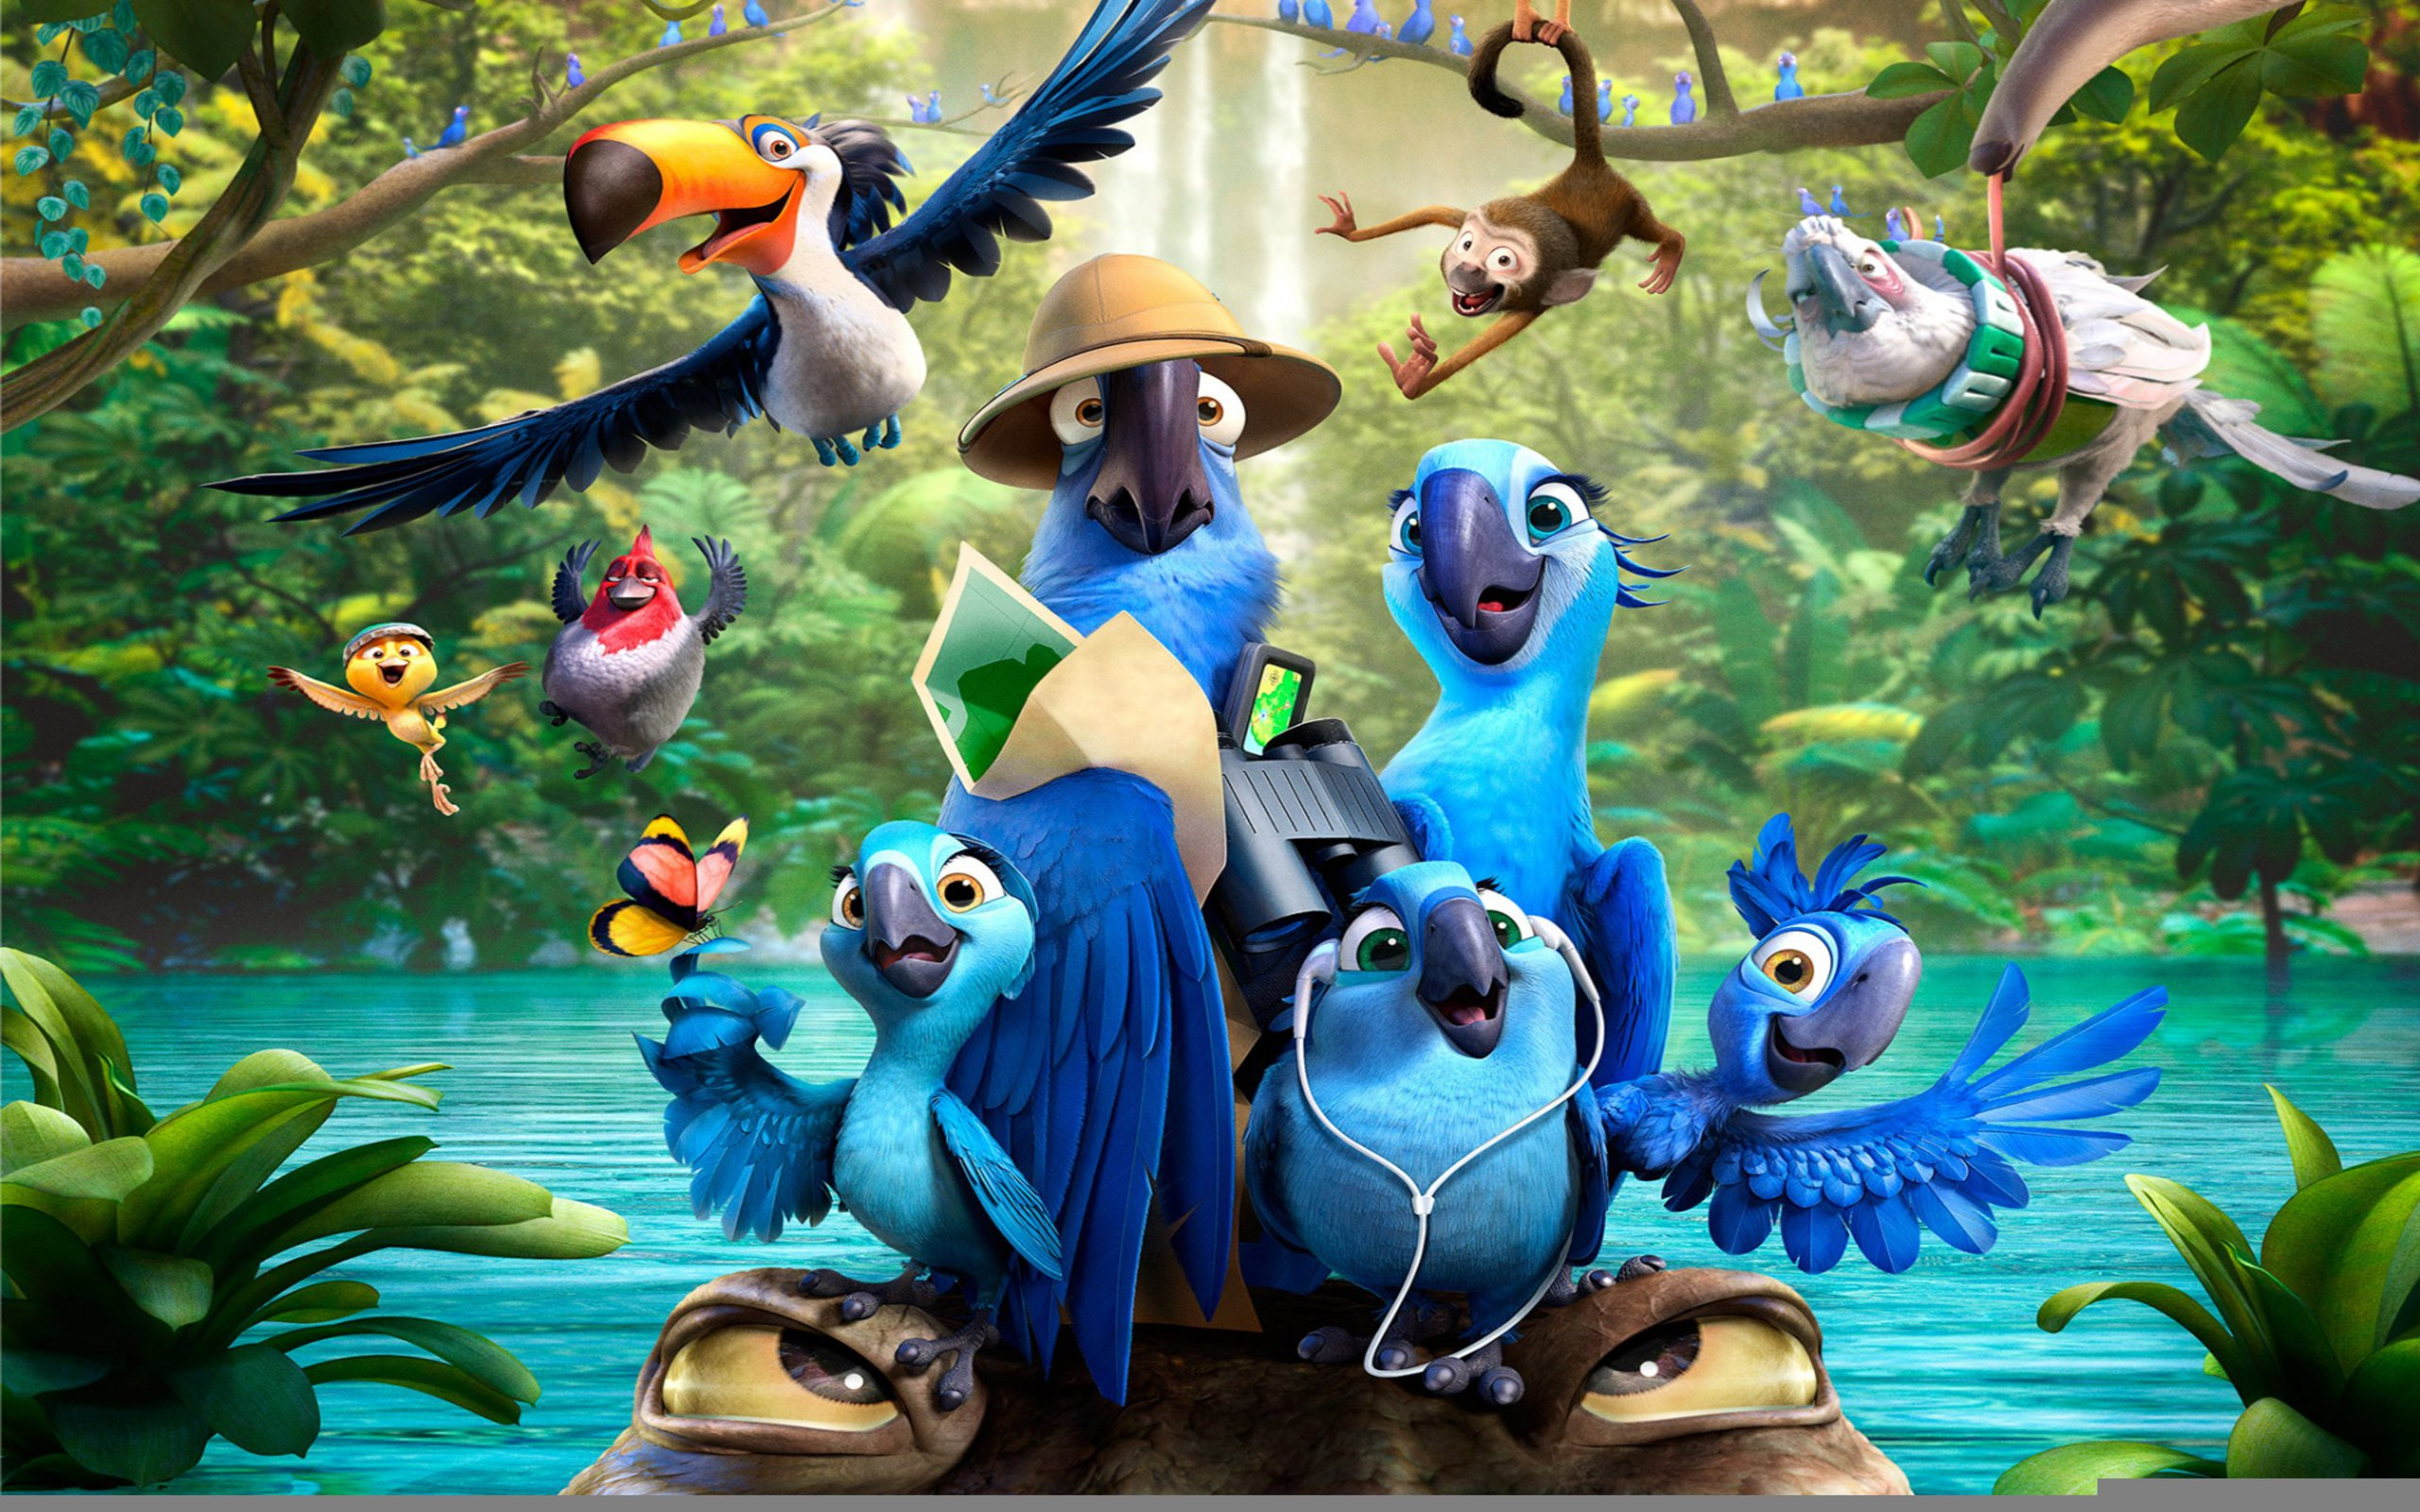 Rio 2 Movie Cartoon wallpaper | 2560x1600 | #9576